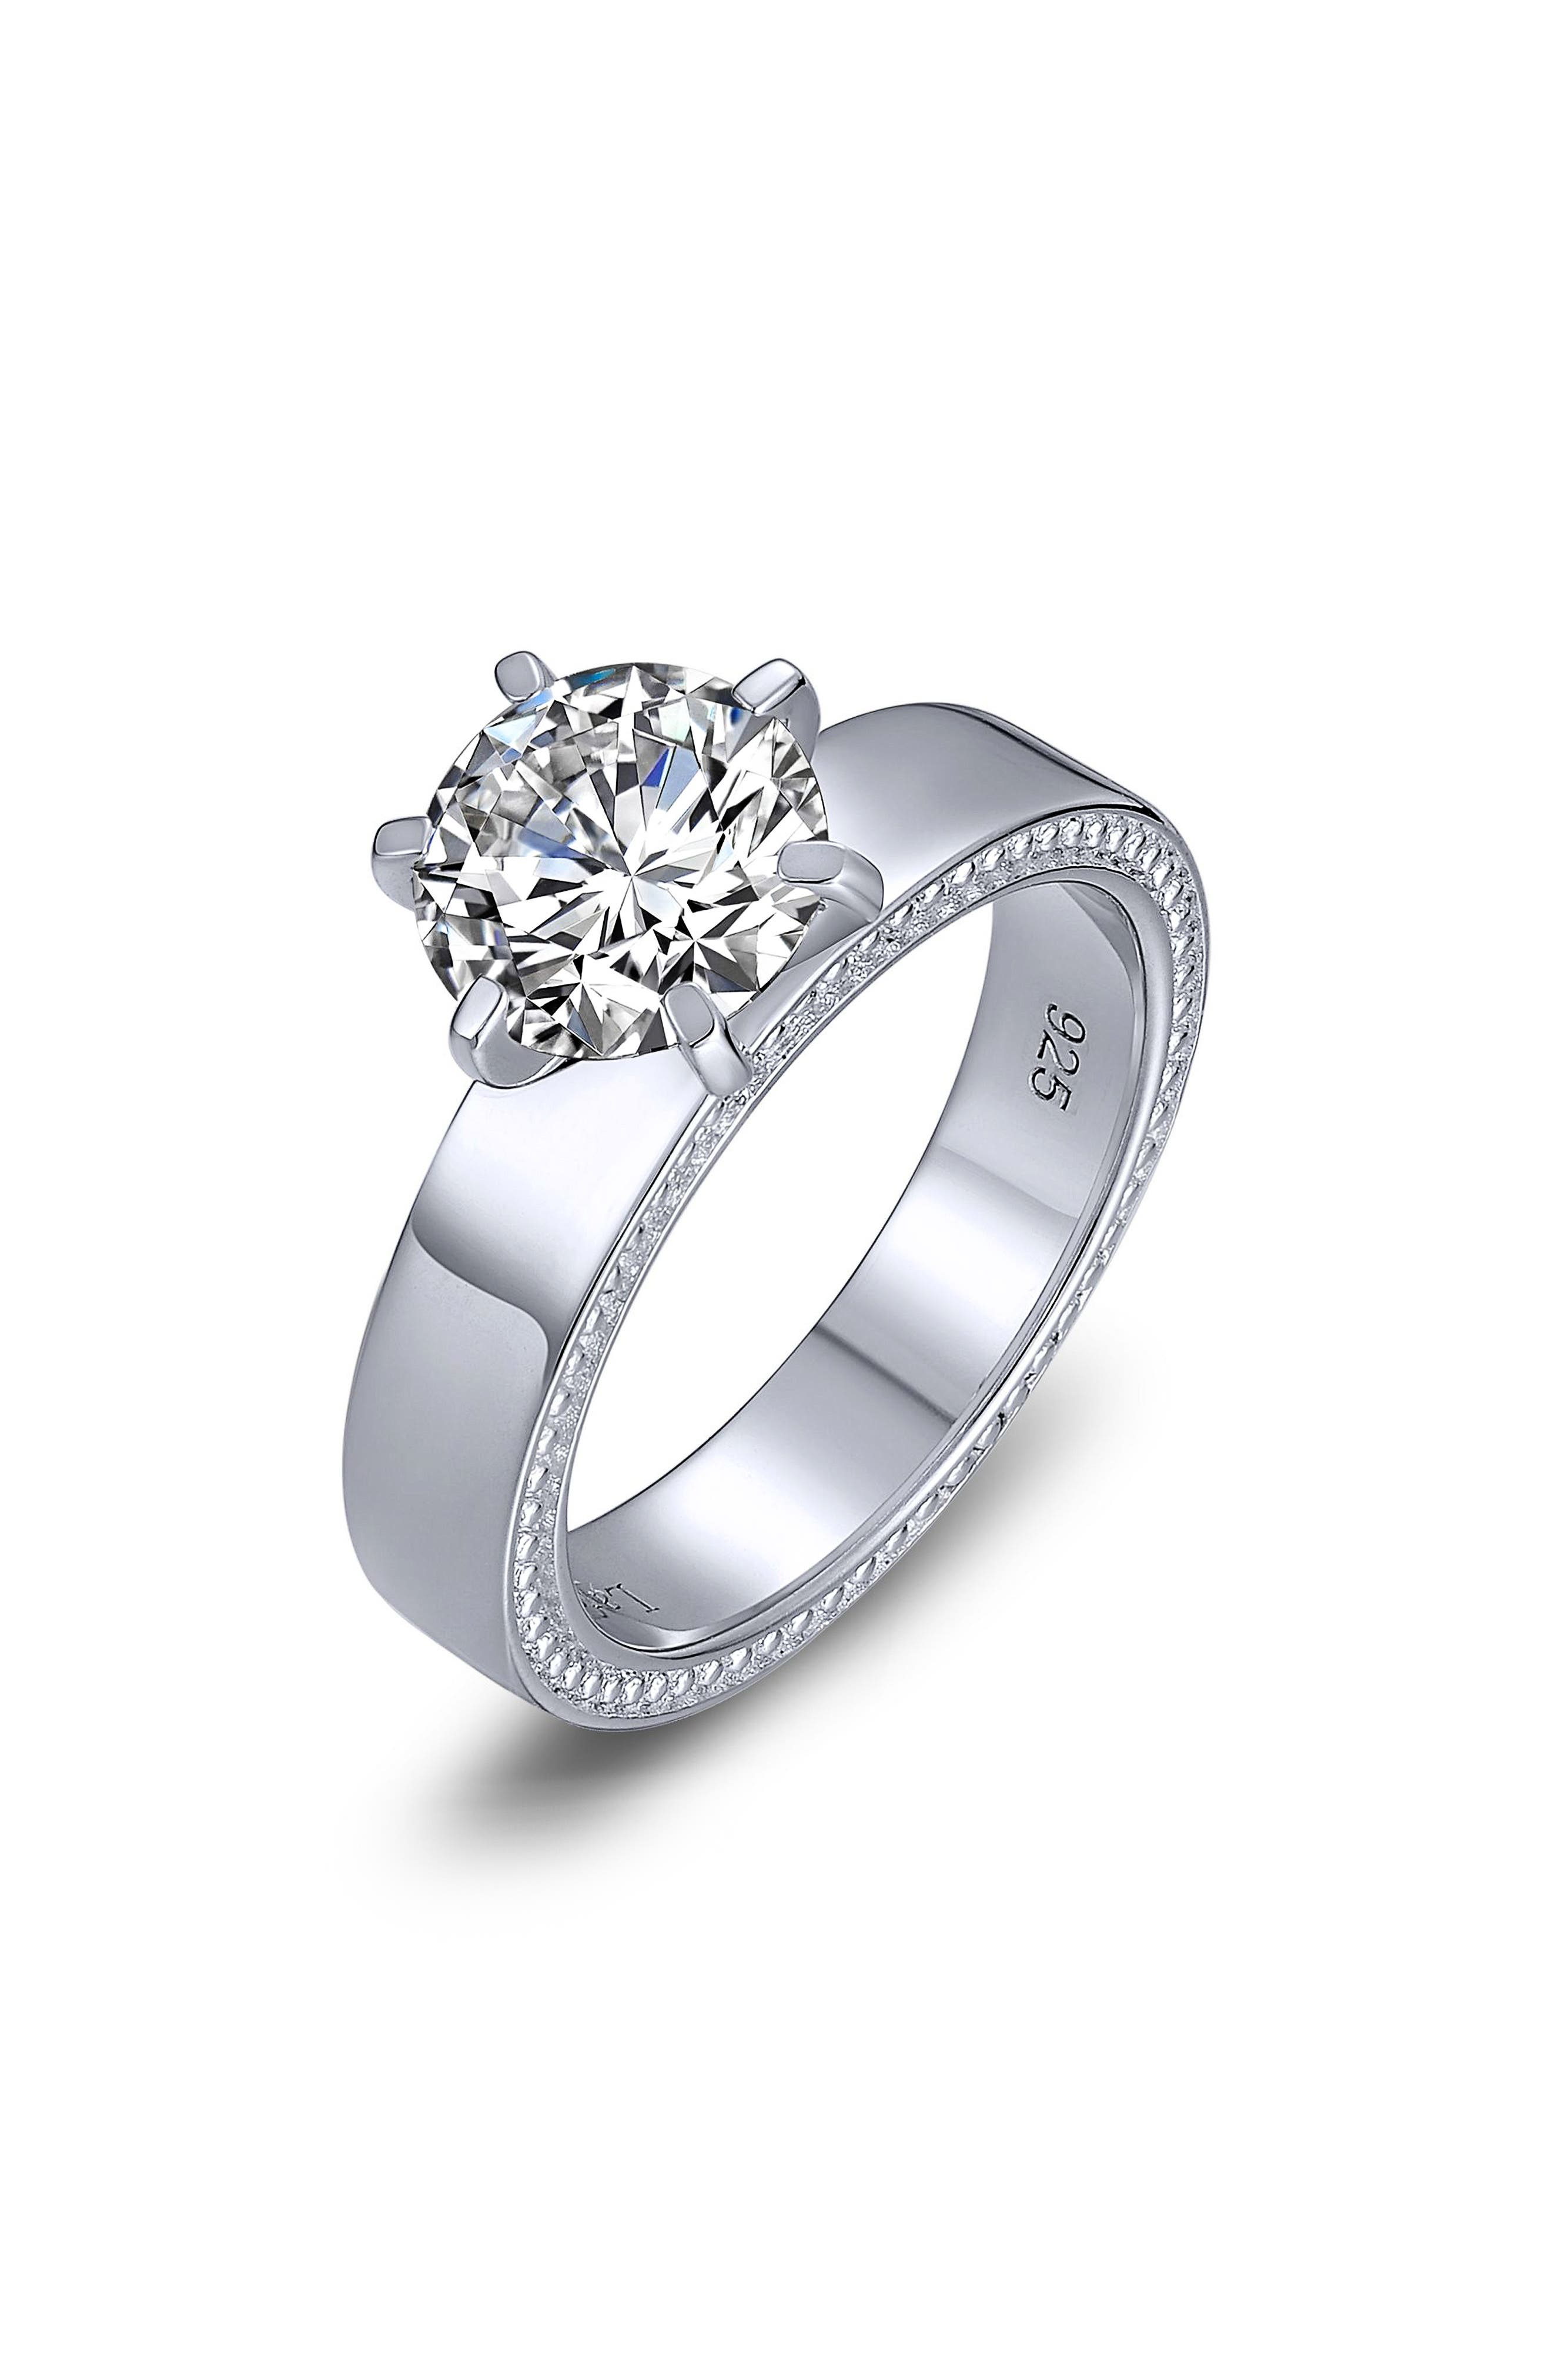 Simulated Diamond Solitaire Ring